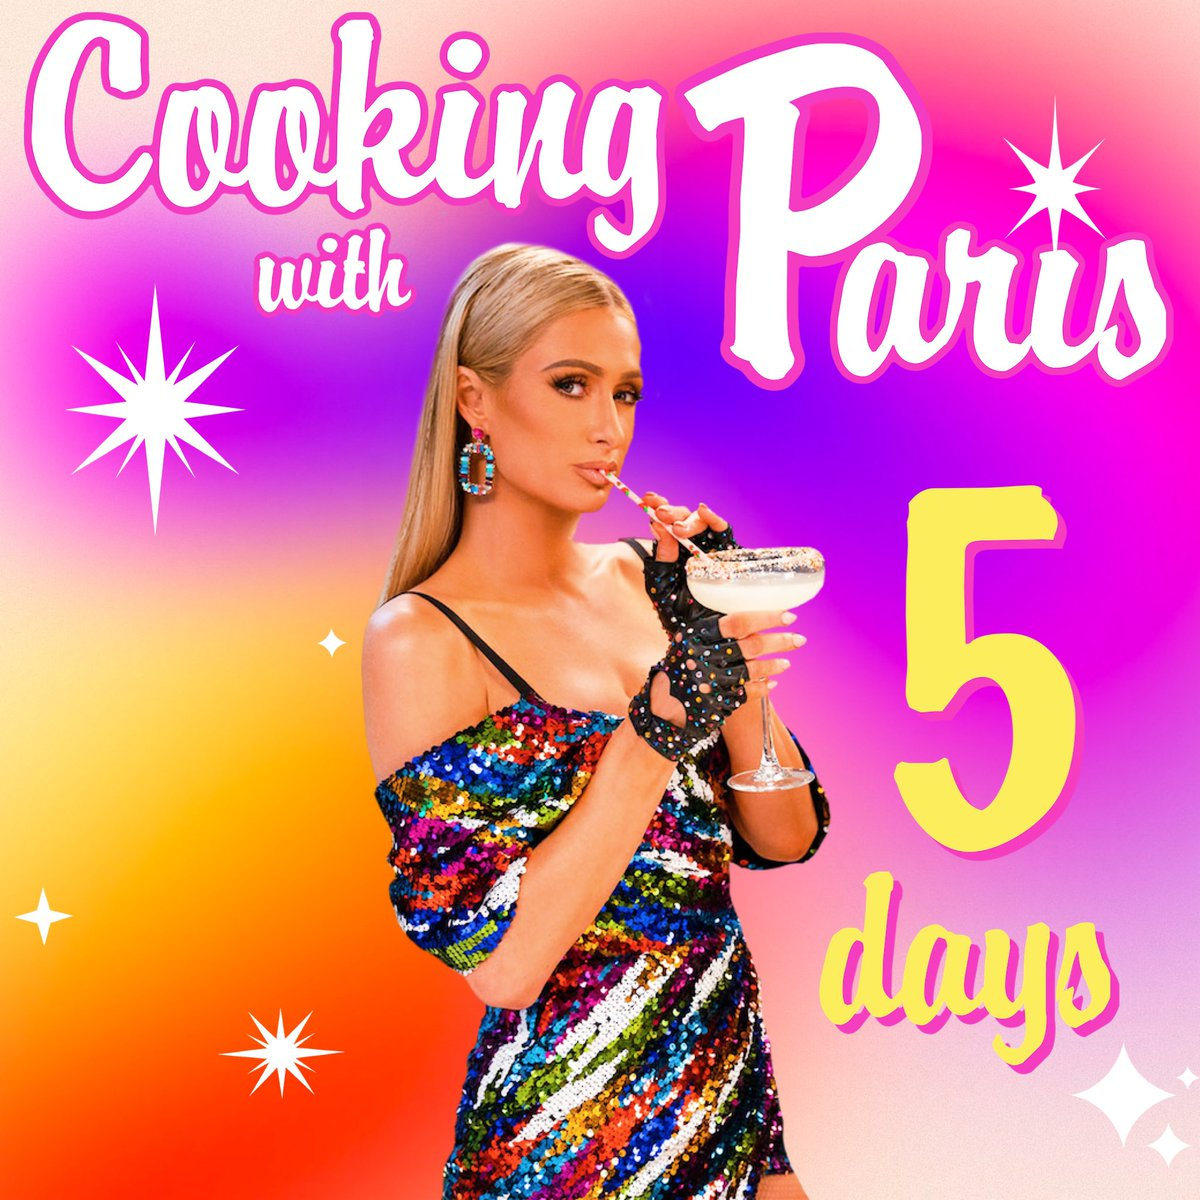 Who's ready for #CookingWithParis?? @Netflix August 4th ????????✨ https://t.co/uBoVCPLcvV